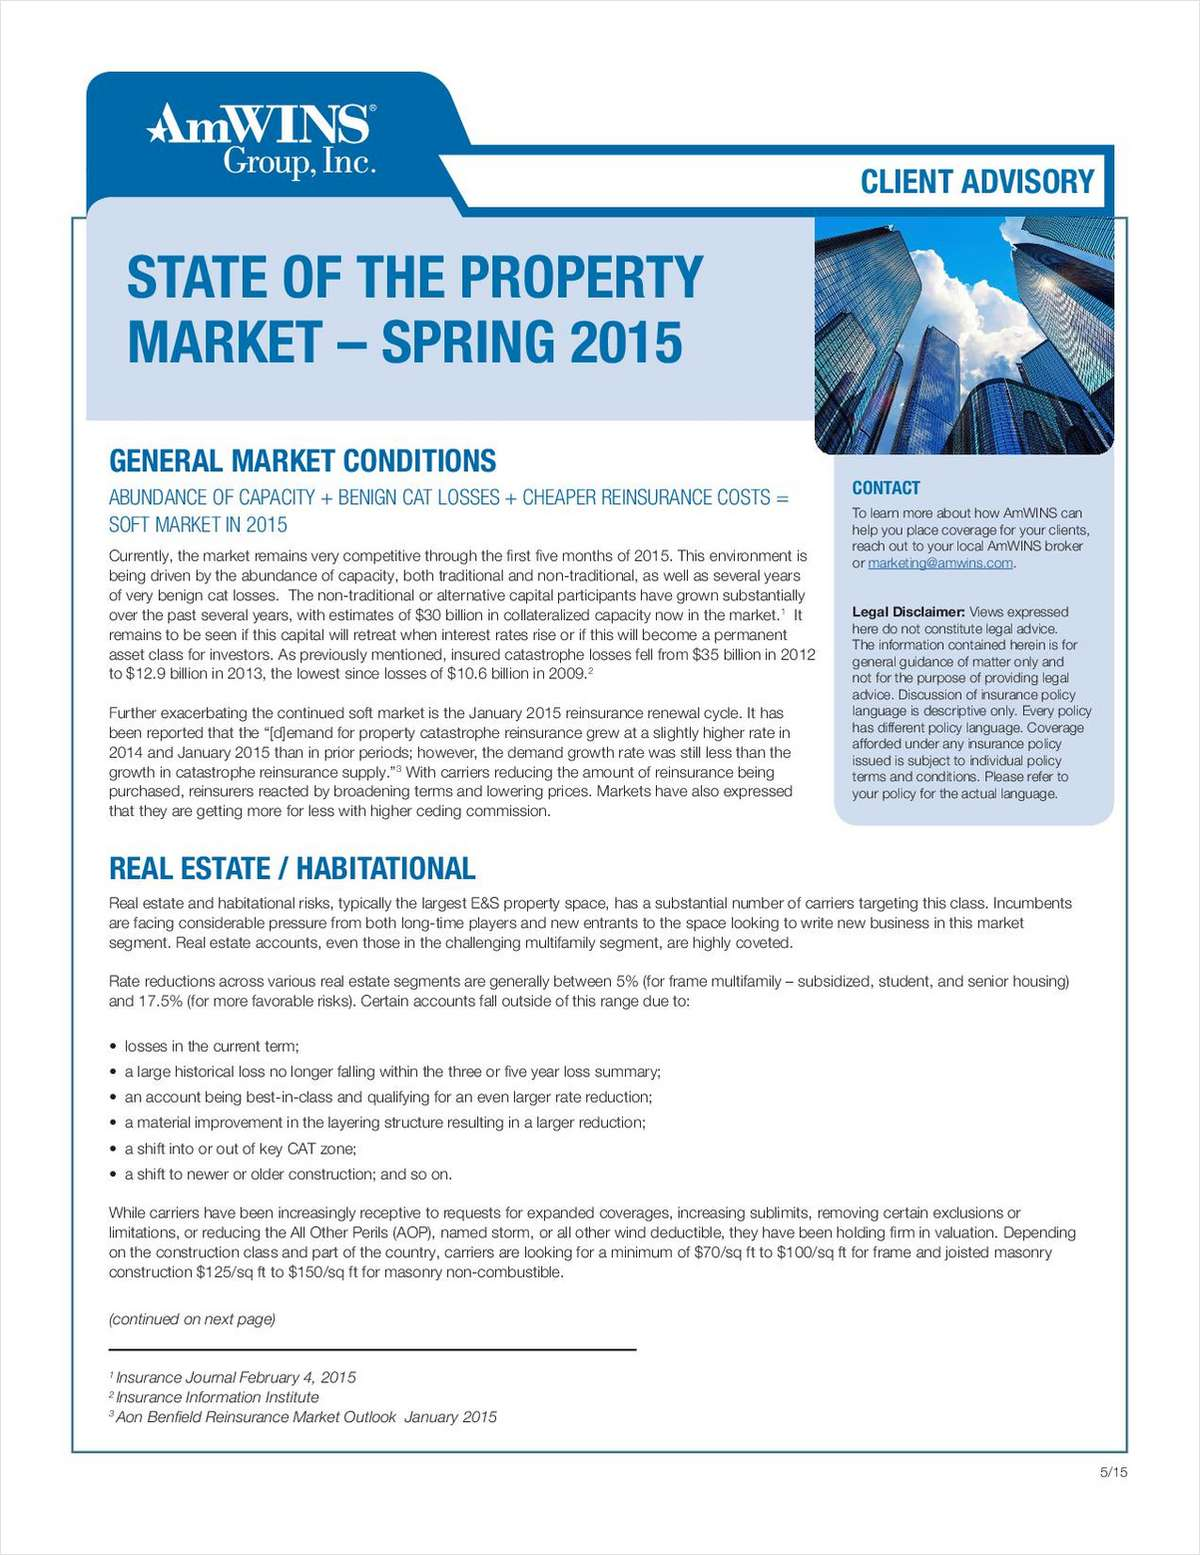 Client Advisory: Property Market Update